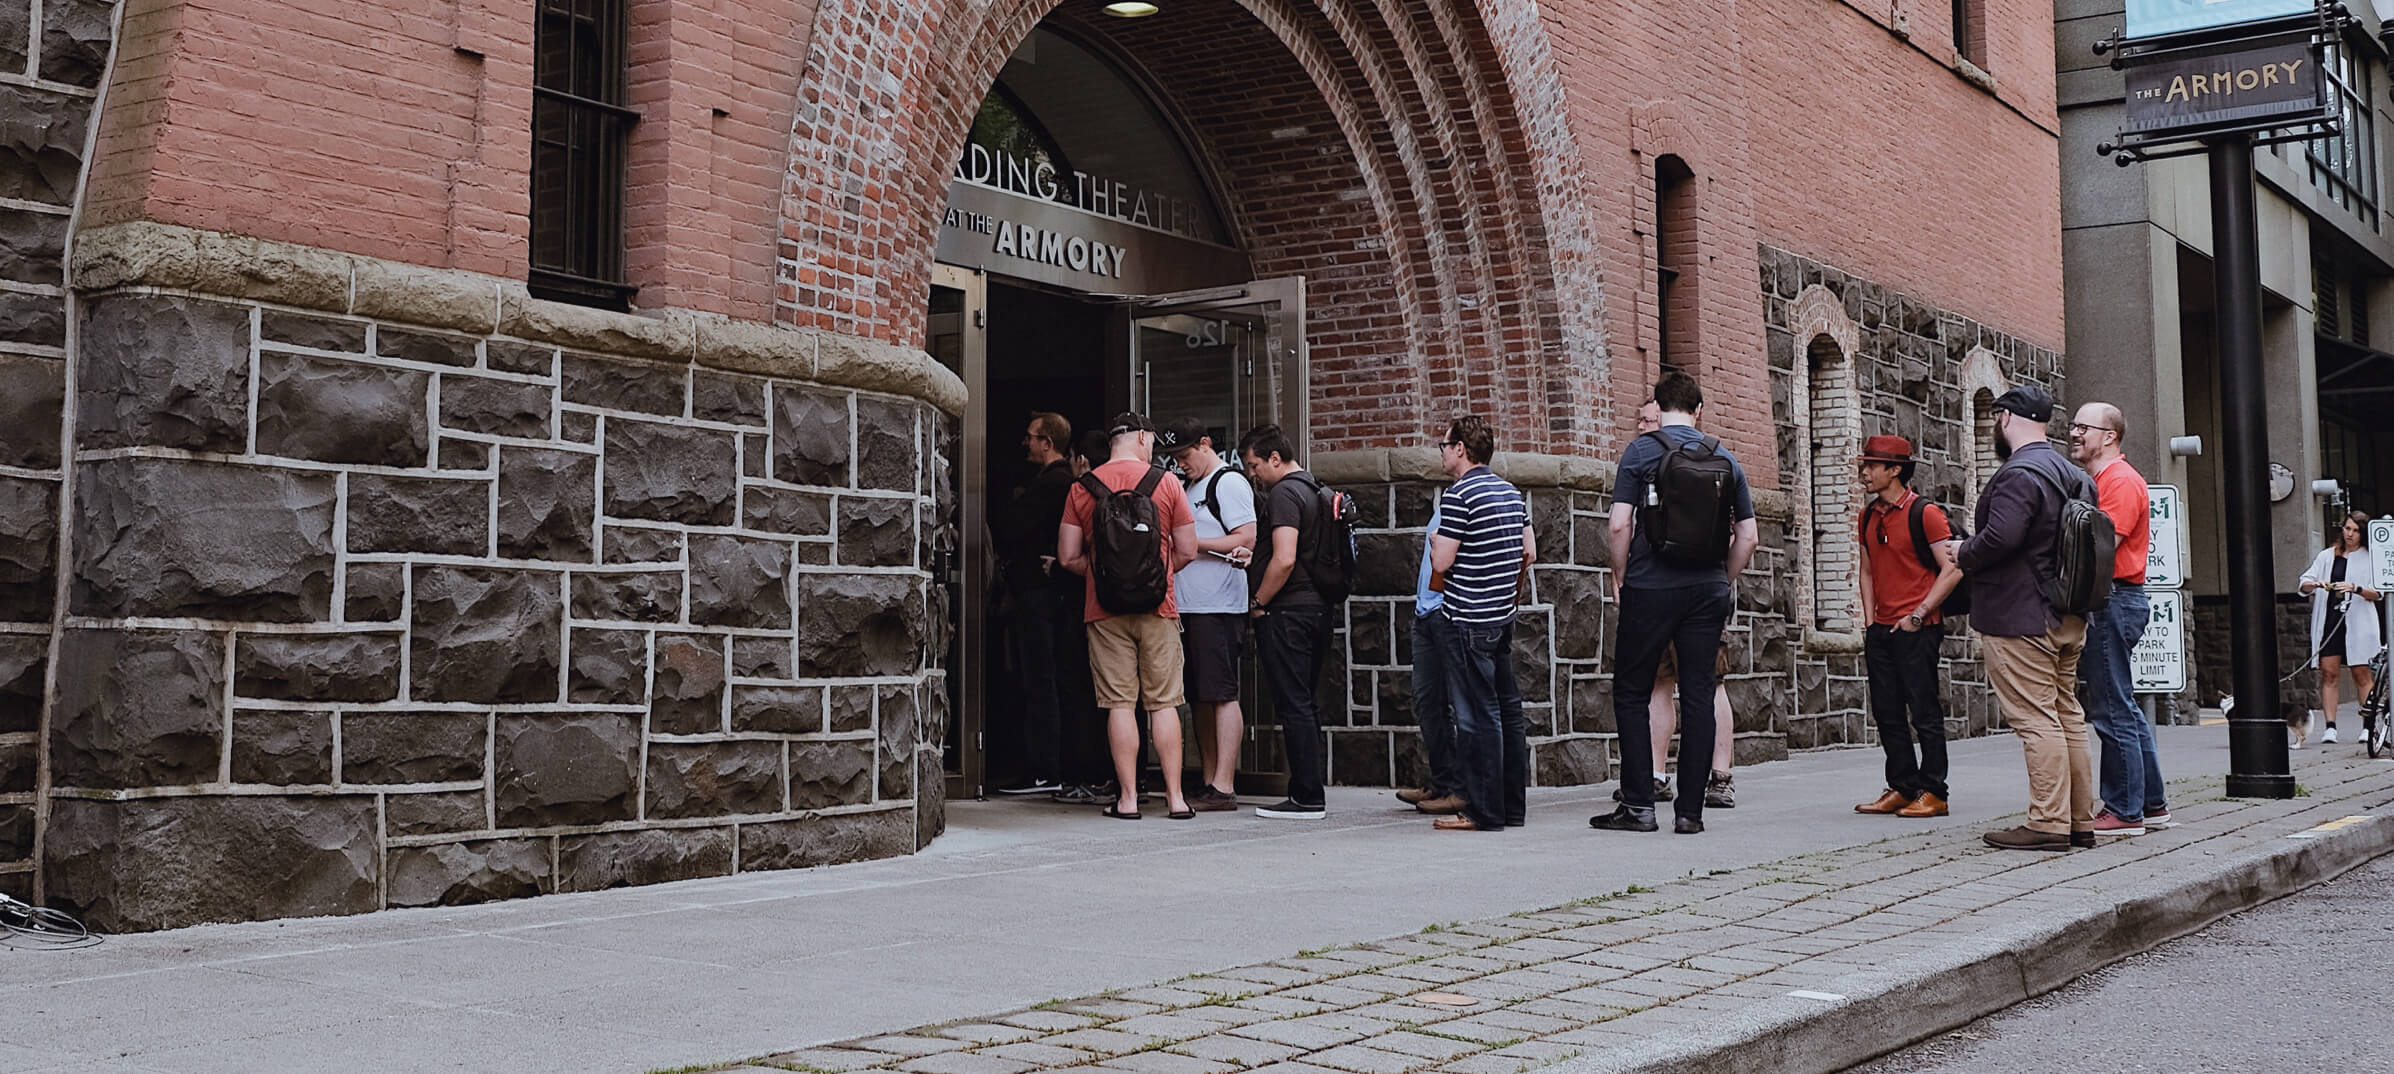 Attendees waiting on sidewalk outside of the Armory venue